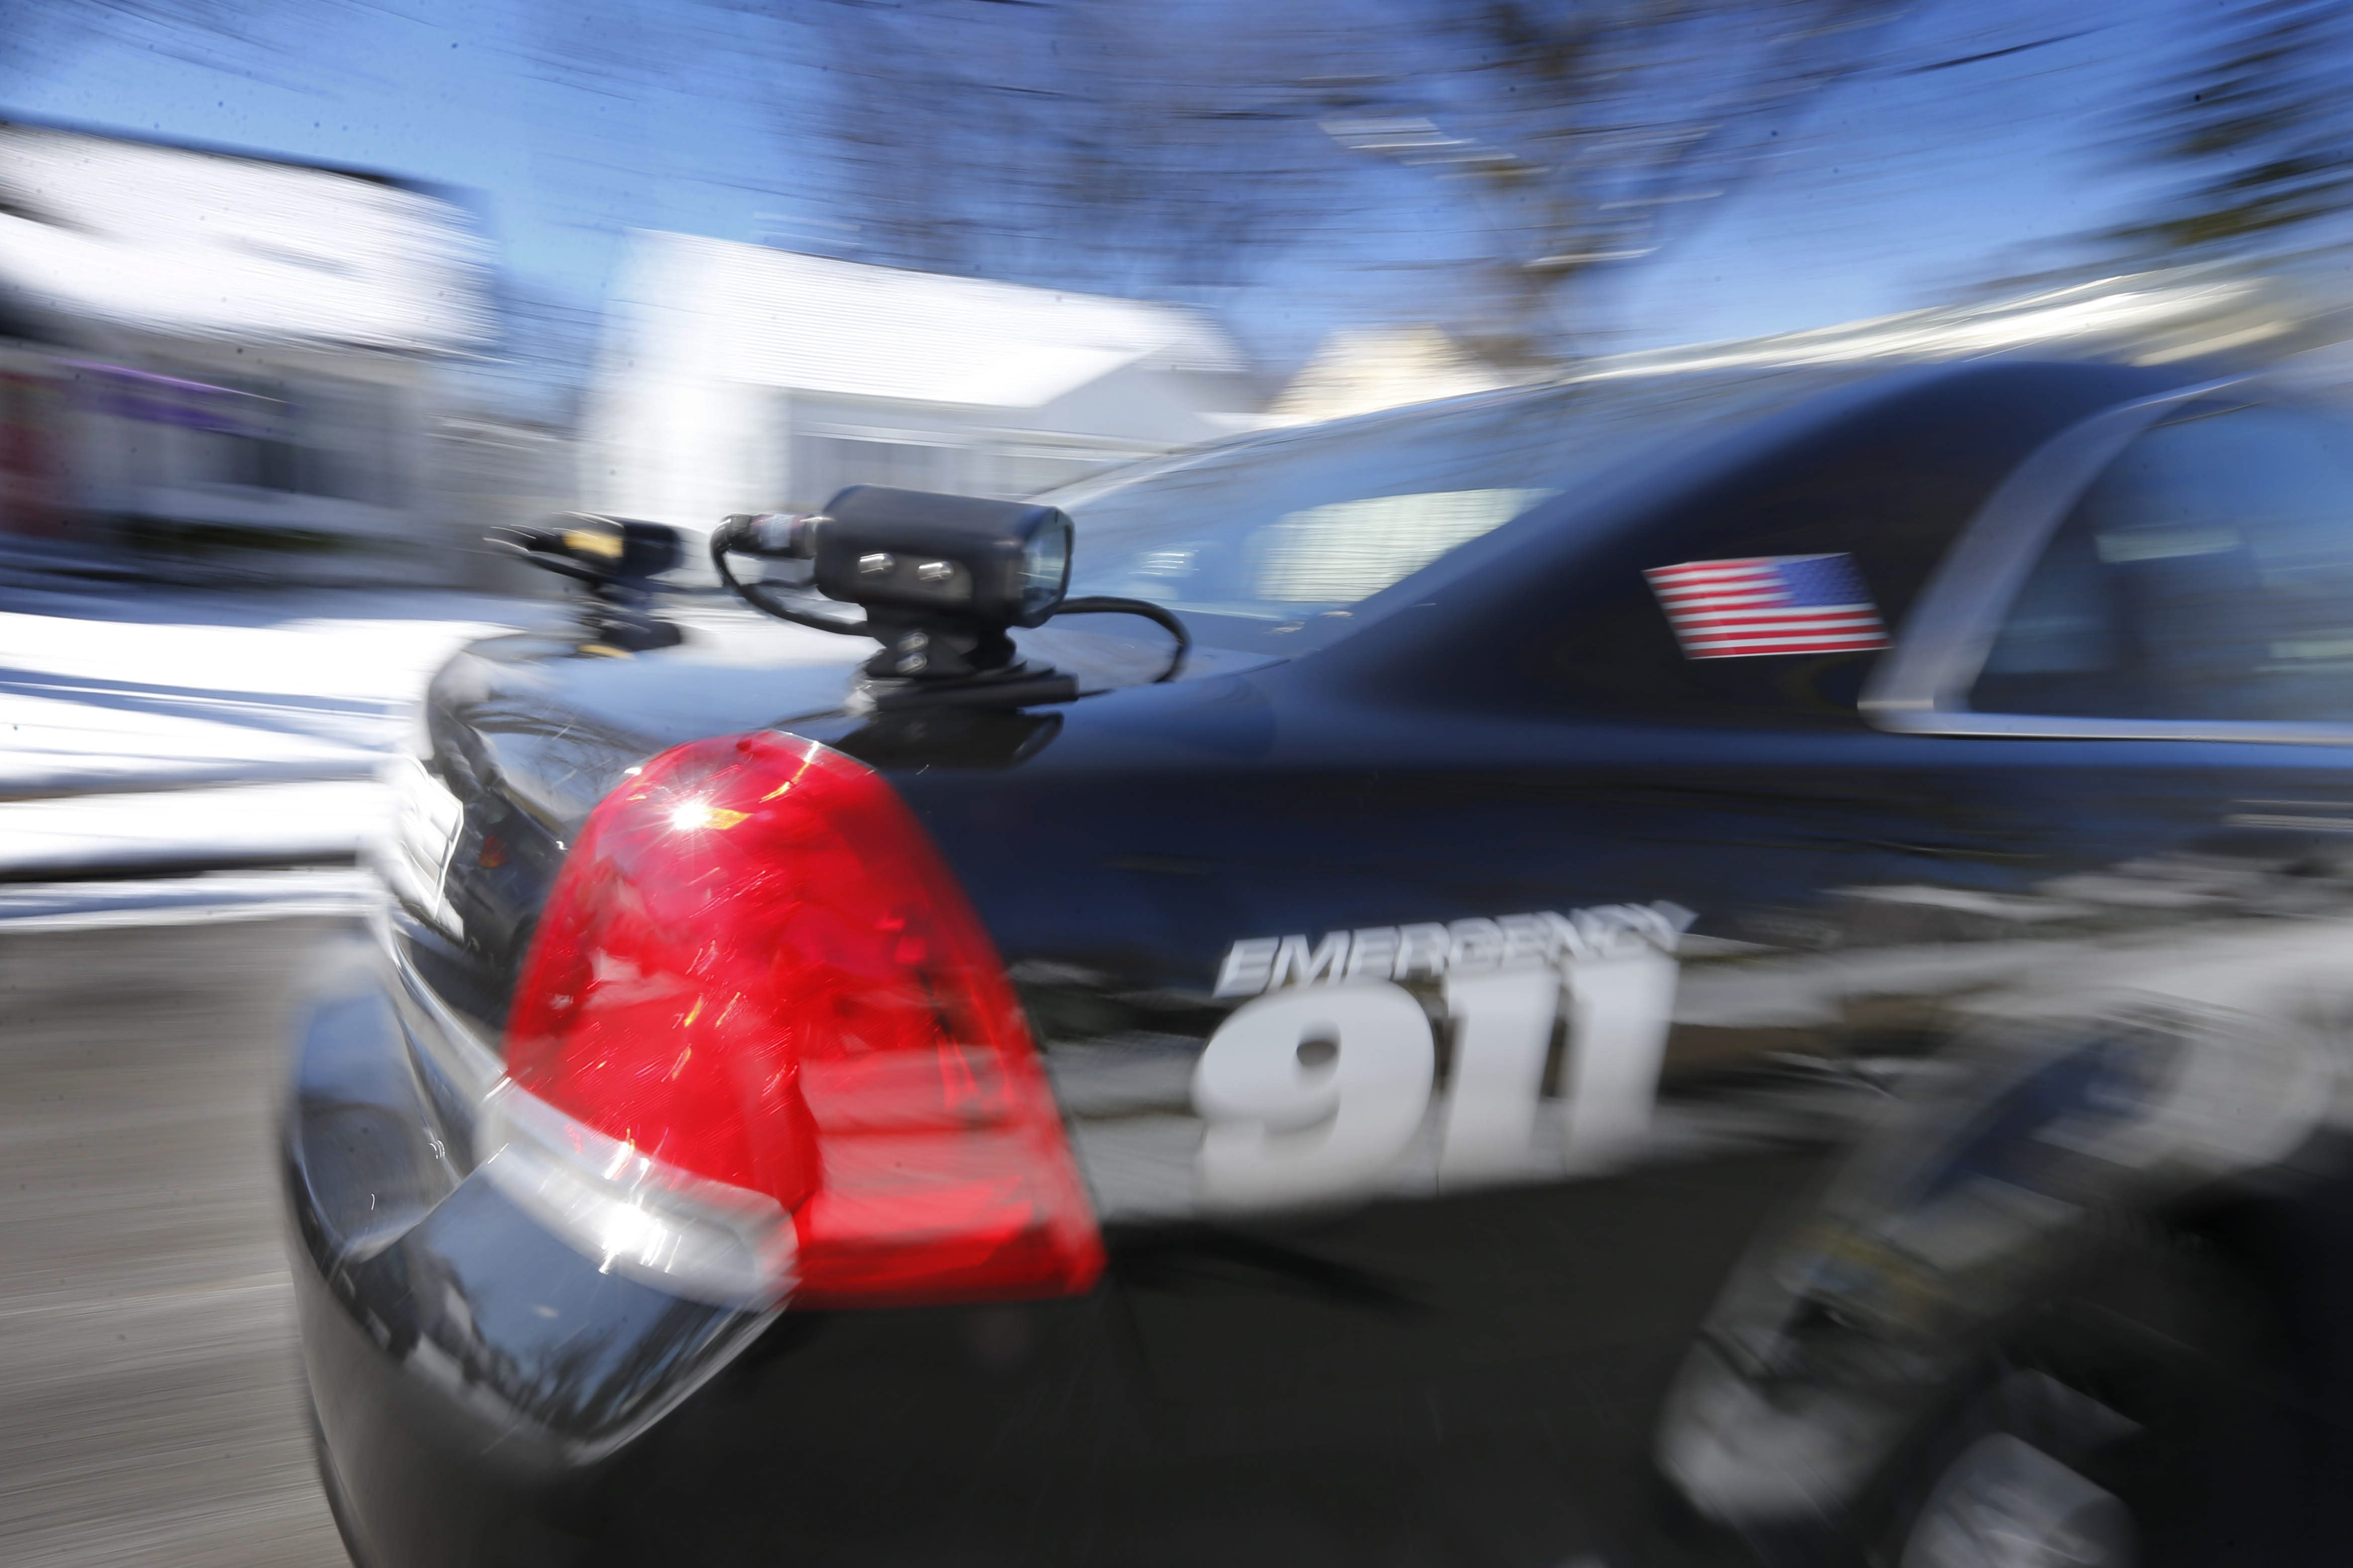 A license plate camera is shown mounted to the back of a Town of Tonawanda Police vehicle on patrol Tuesday. The cameras and connected software scan and record the date and location of every license plate the vehicle passes.